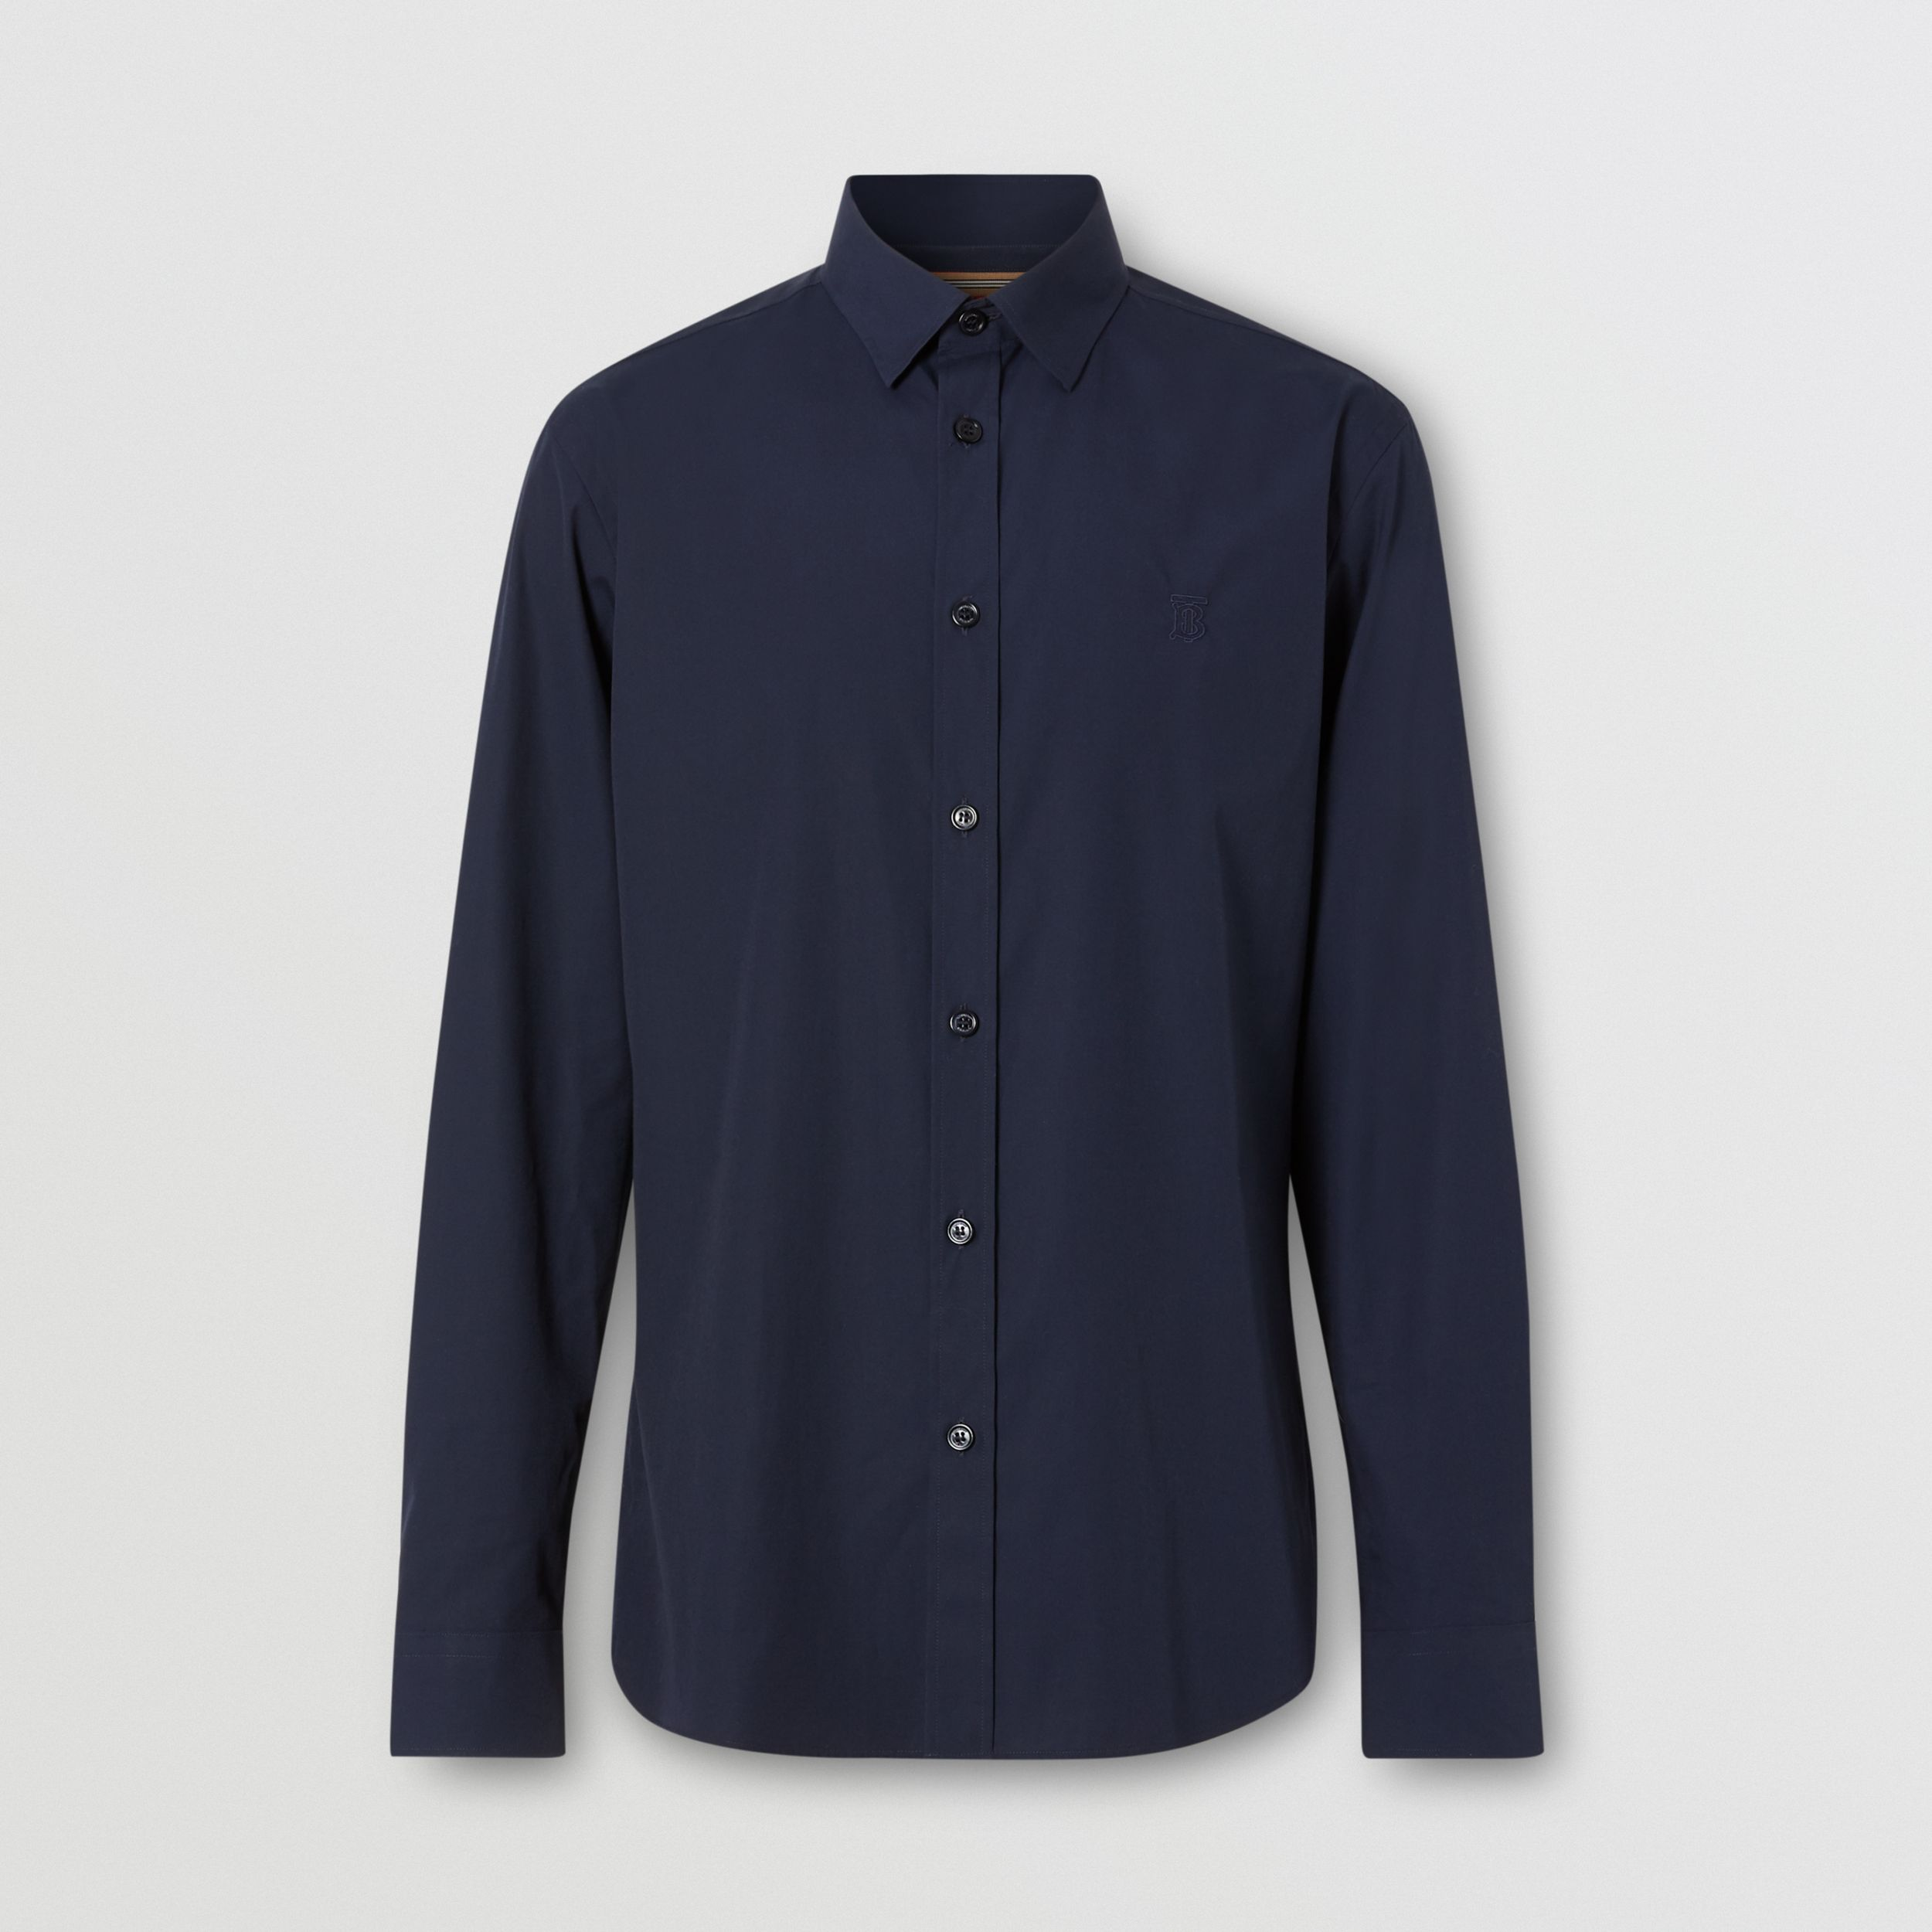 Monogram Motif Stretch Cotton Poplin Shirt in Navy - Men | Burberry United Kingdom - 4